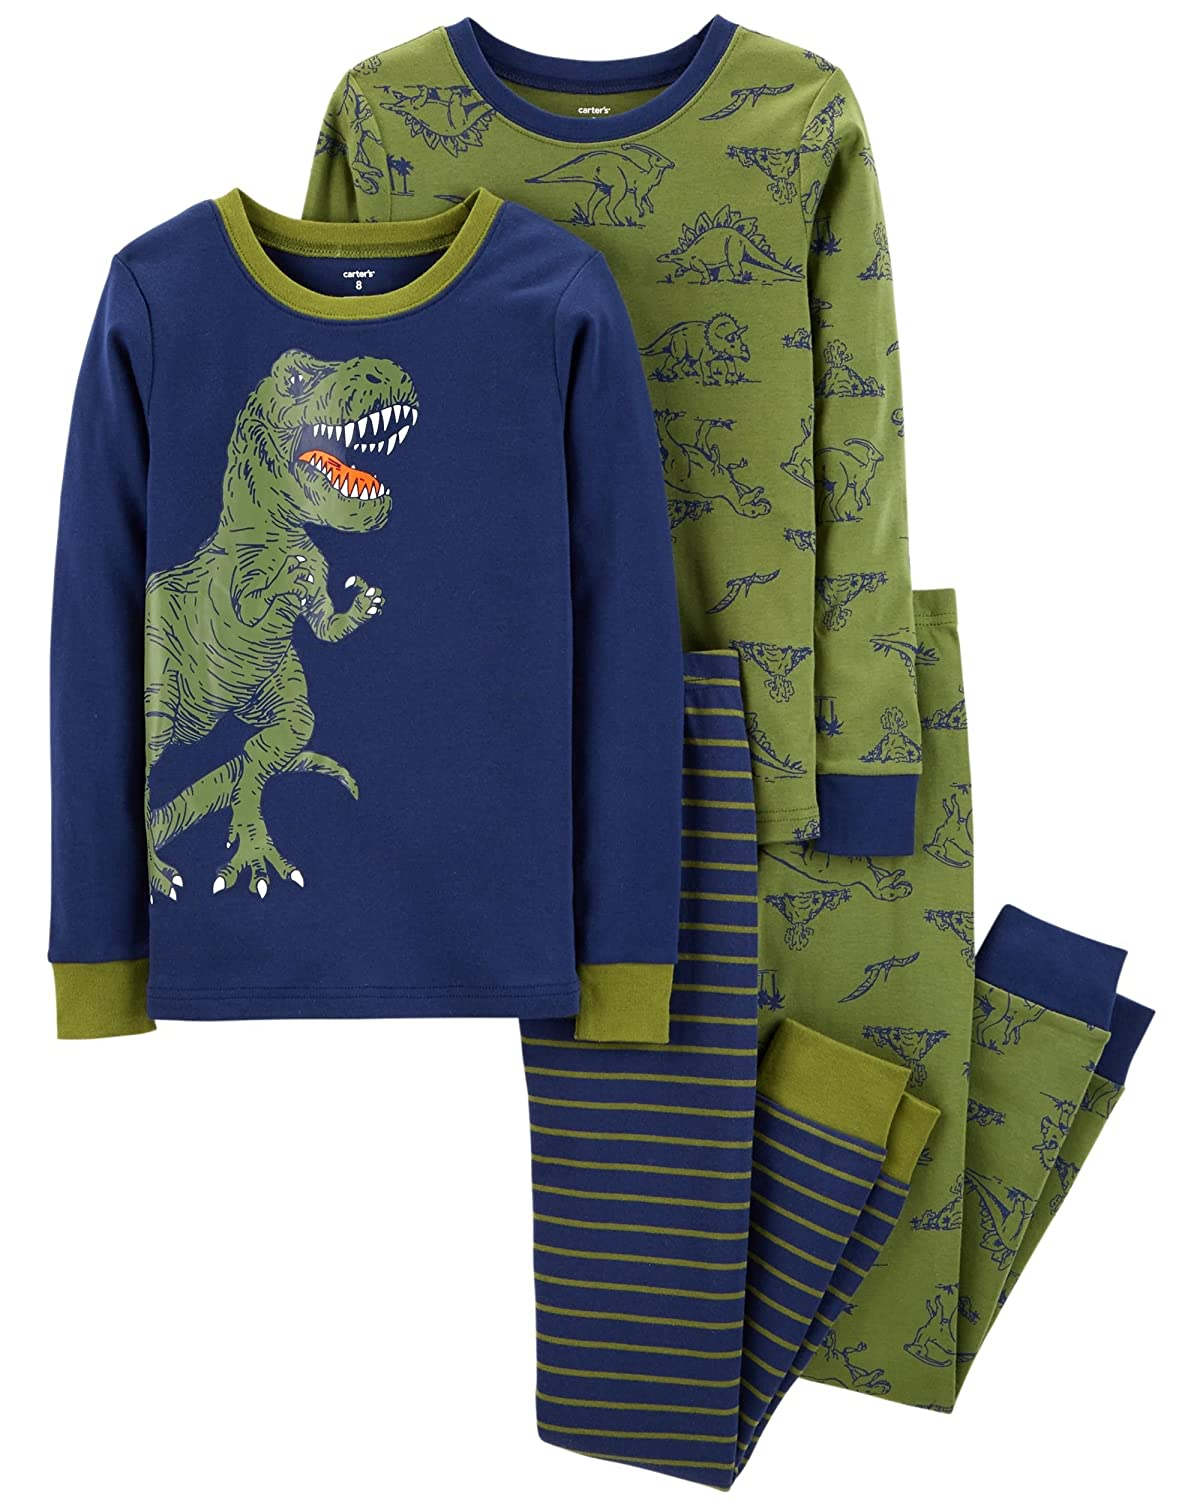 Carters Toddler Boys 4 Pc Pajama PJs Sleep Play Sleep Snug fit Cotton Dino Dinosaur T-rex 12